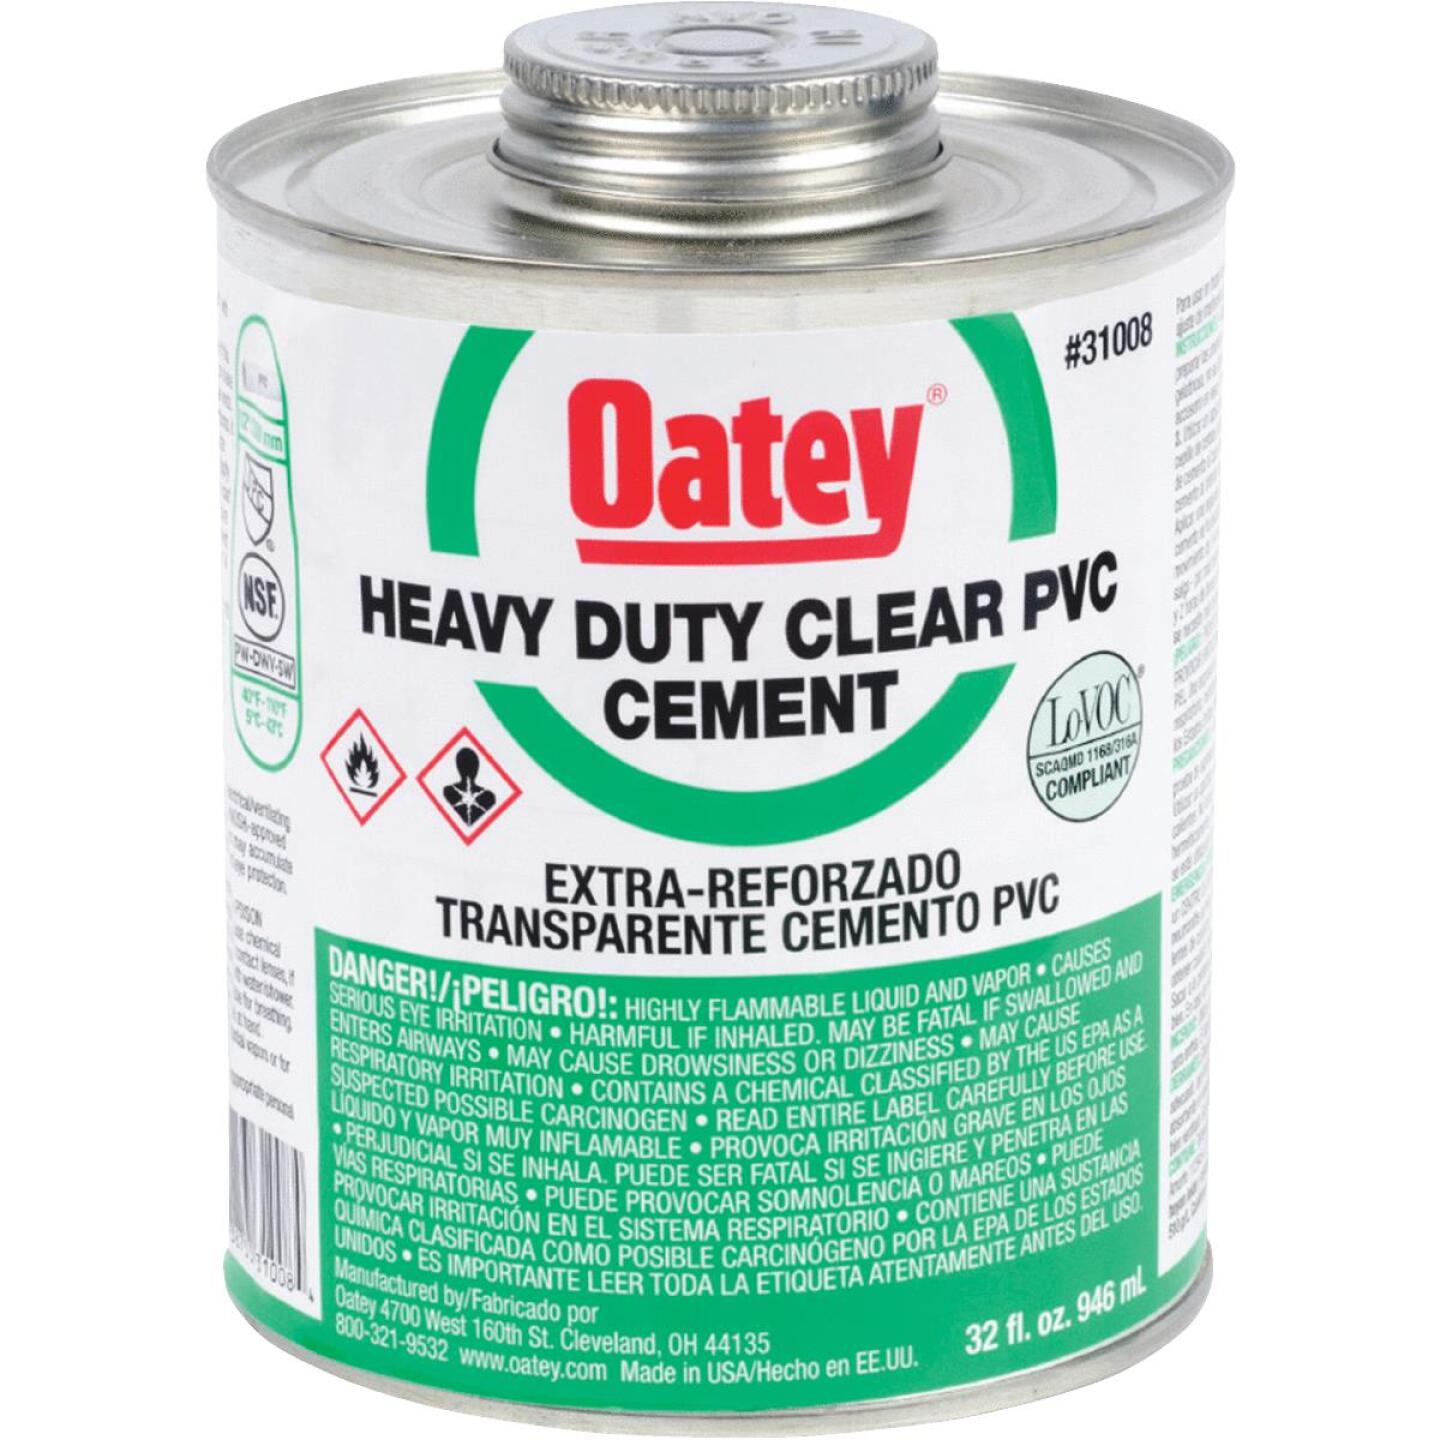 Oatey 32 Oz. Heavy Bodied Clear PVC Cement Image 1